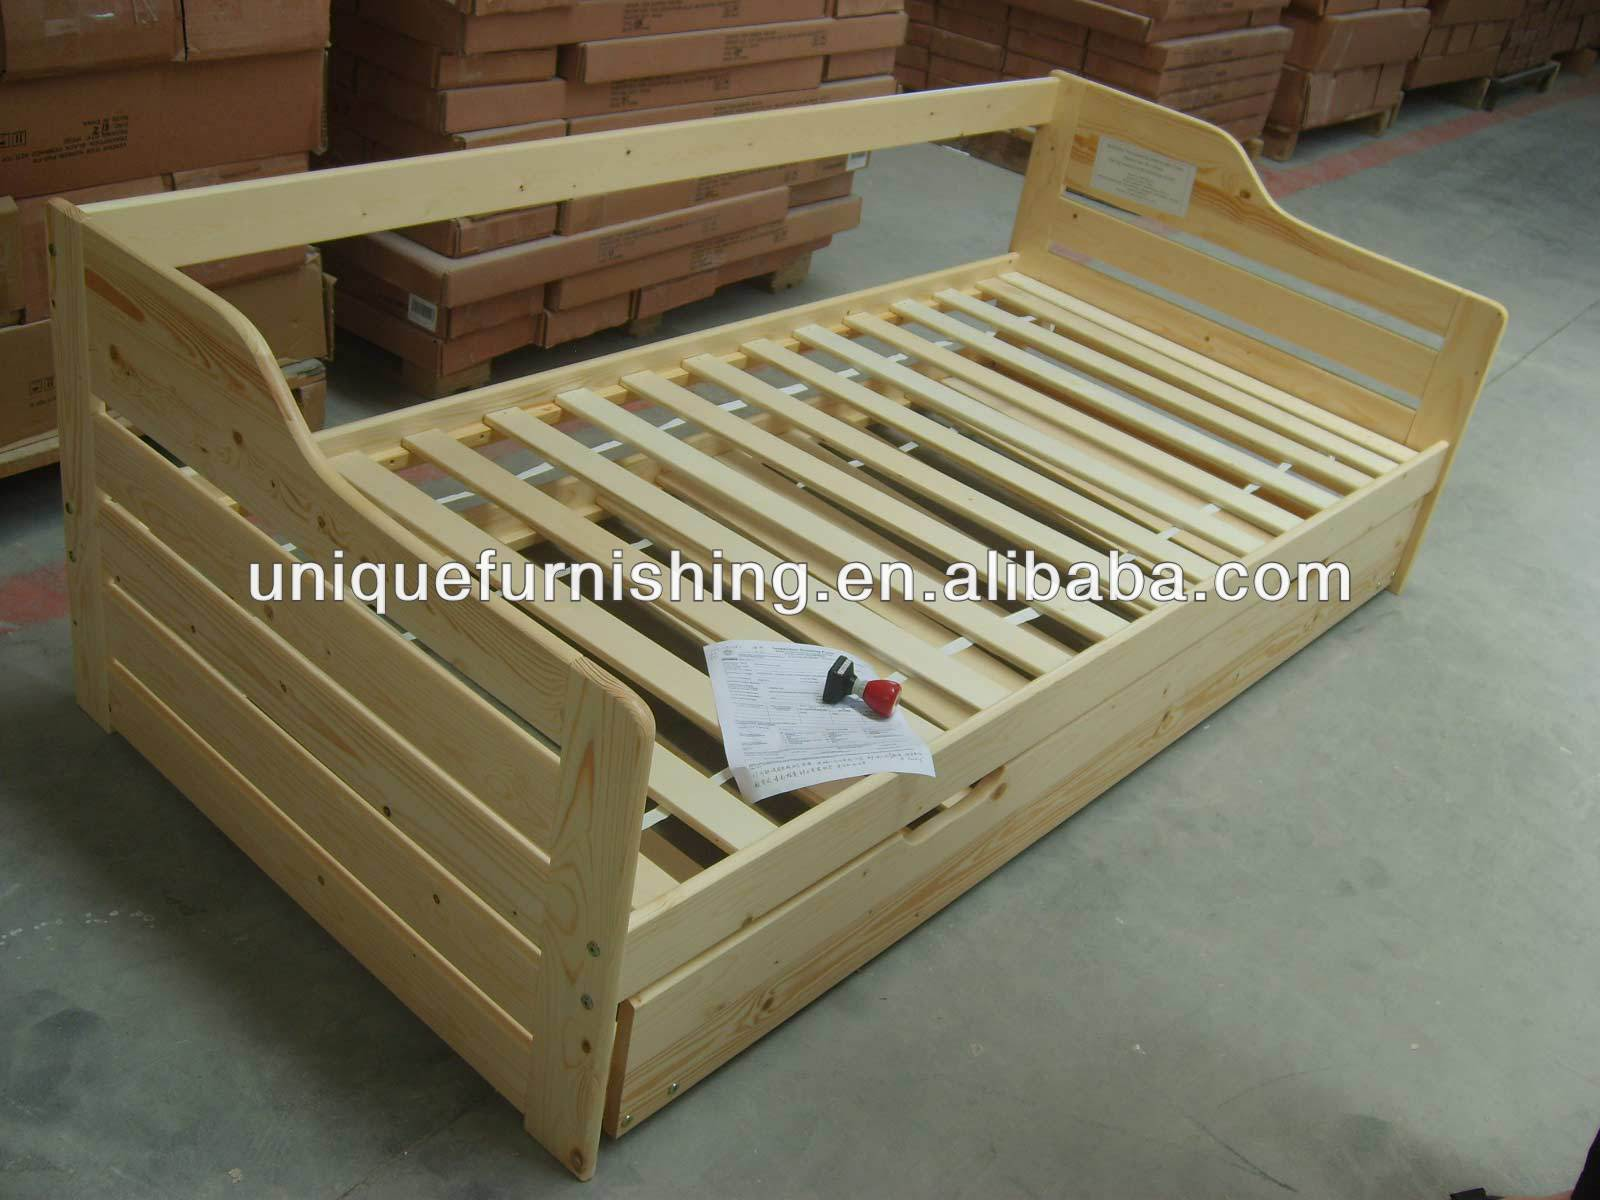 Modern Quality Solid Pine Wood Box Bed Designs For Sofa Desingn Double Product On Alibaba